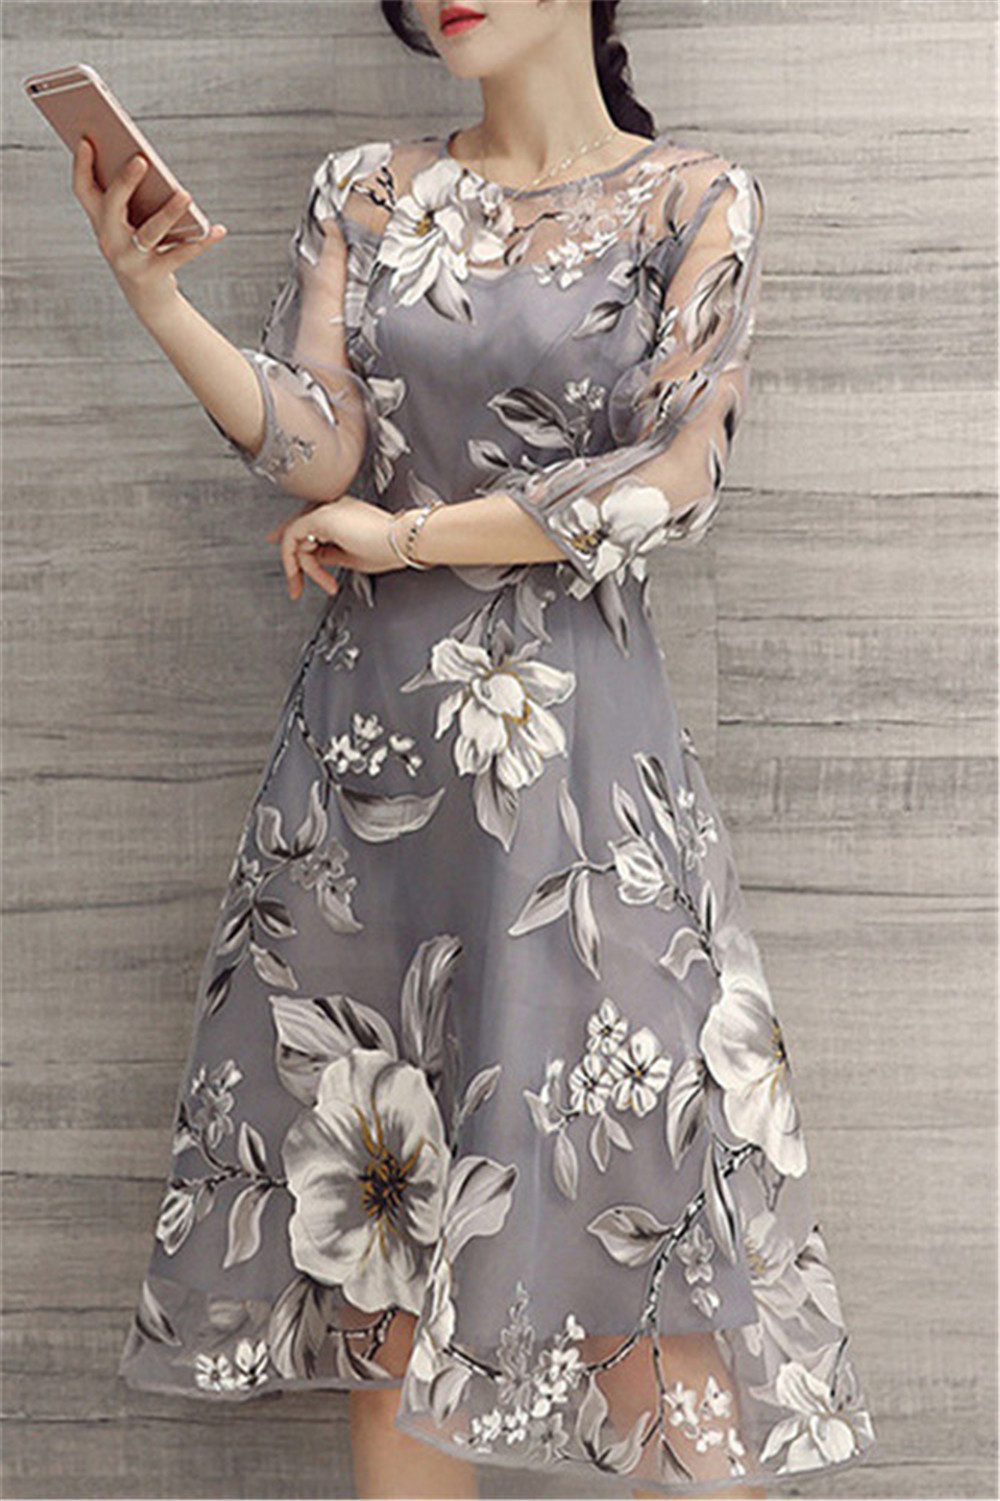 56303c1b3a1 Long Sleeve 2018 Summer Women Floral Print A-line Mesh Dress Vintage Party  O Neck